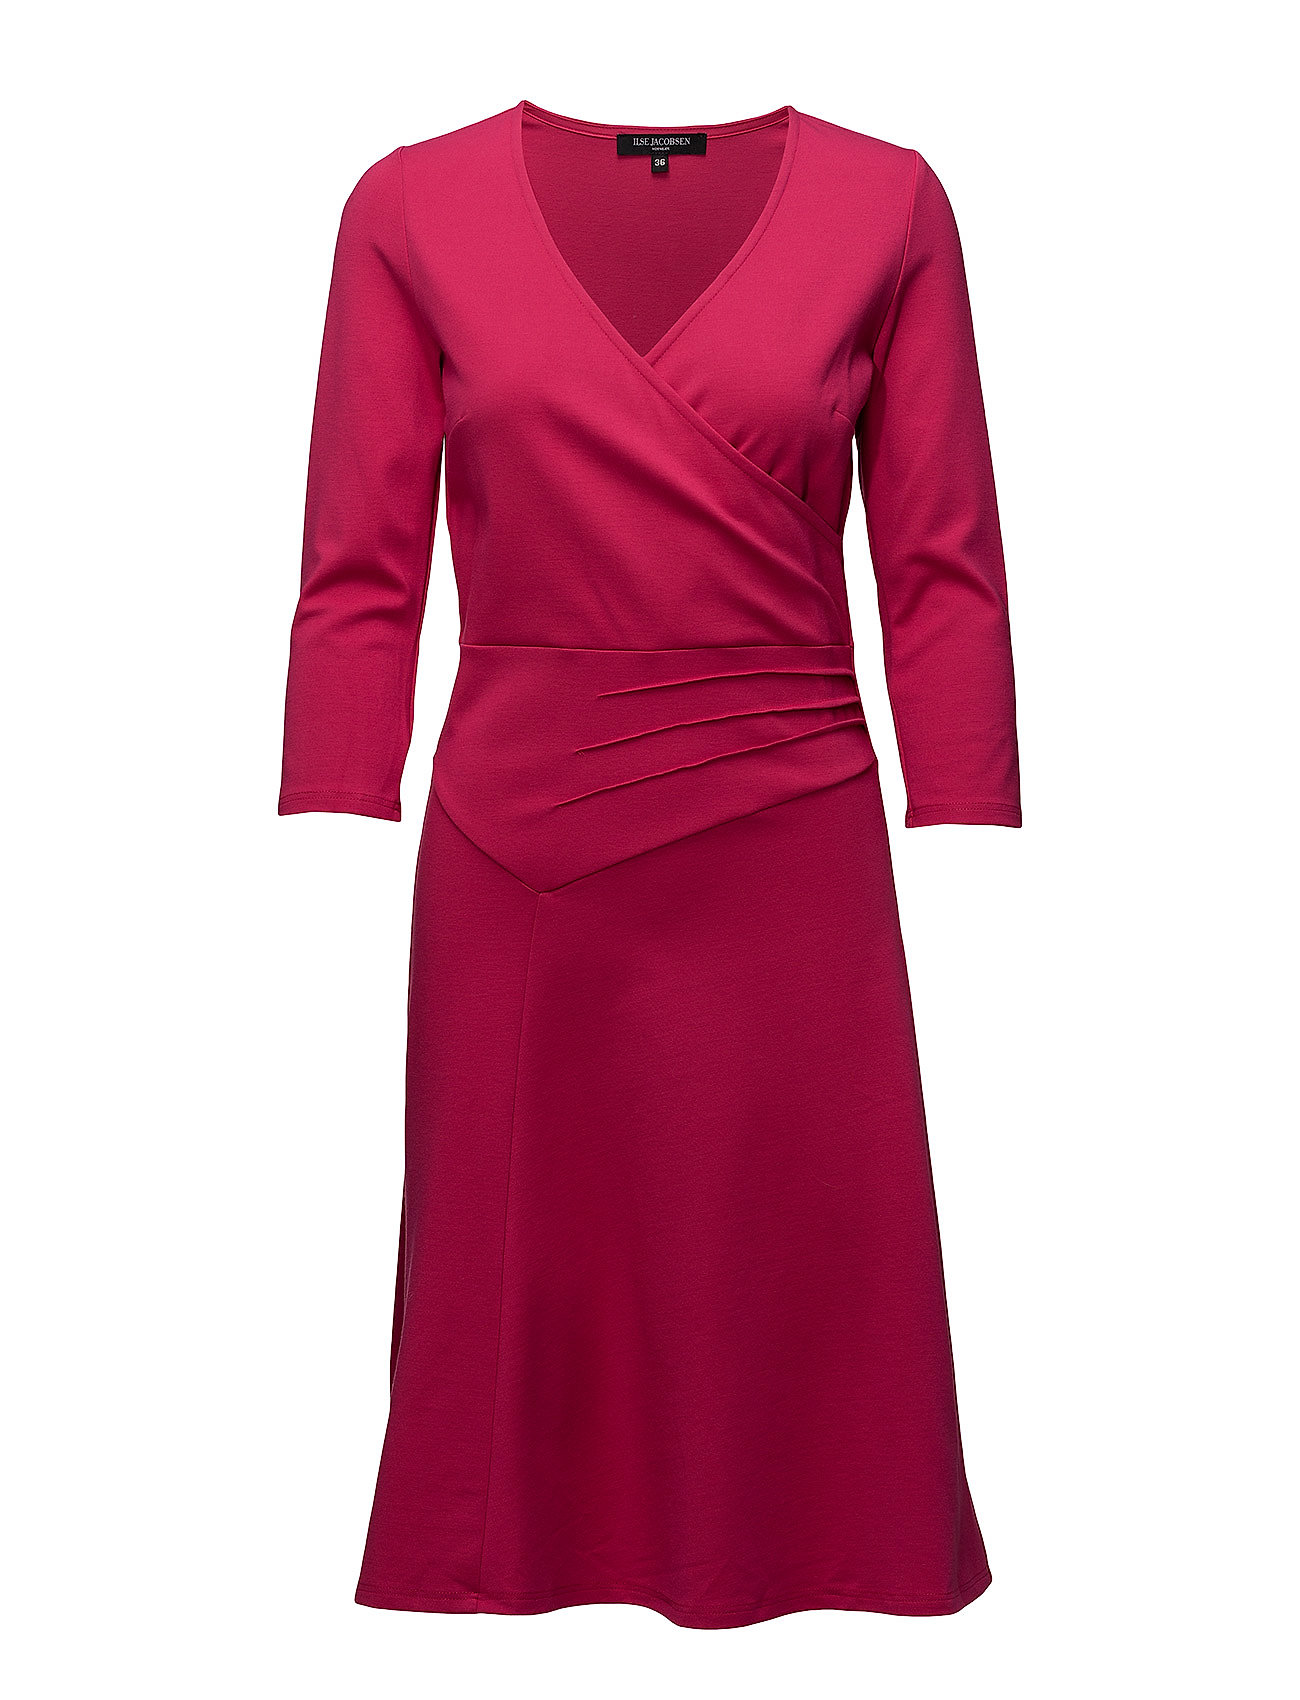 Ilse Jacobsen DRESS - 317 WARM PINK